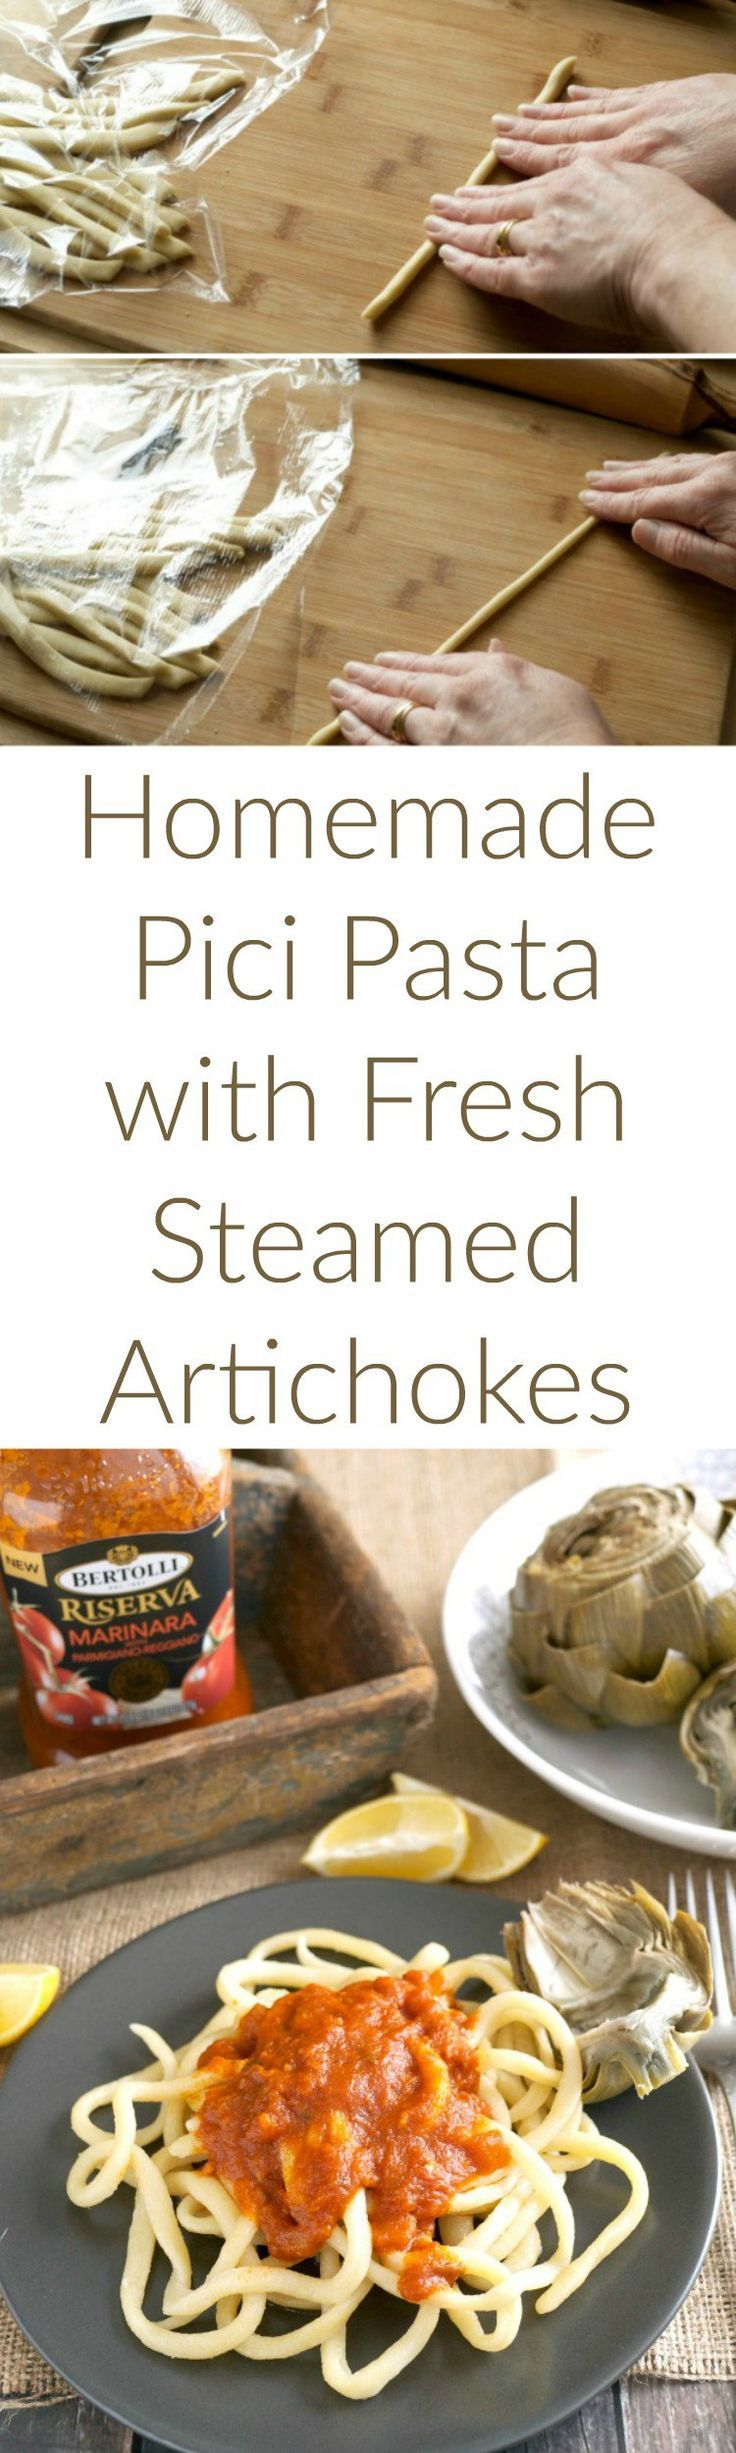 #AD Homemade pici pasta with Bertolli Riserva Marinara and fresh steamed artichokes. A meatless monday meal to welcome spring. #vivabertolli